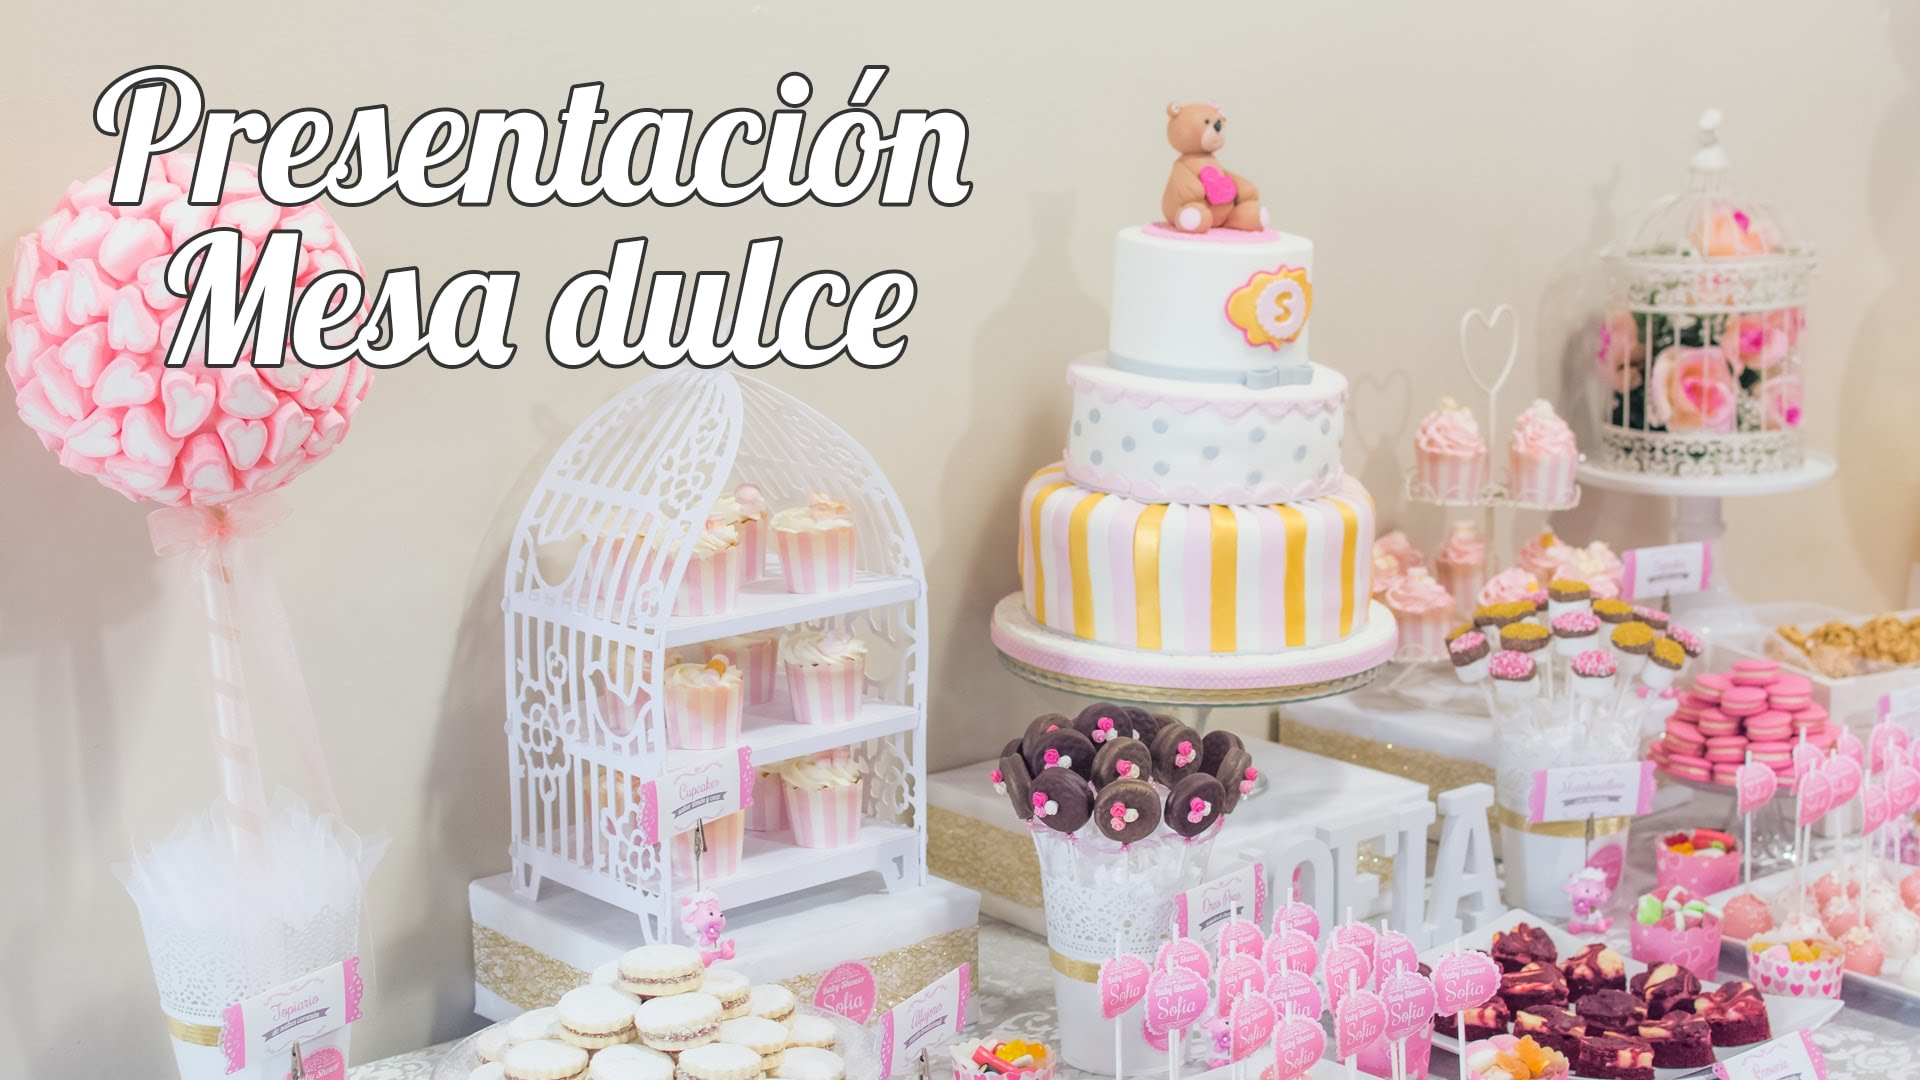 Como montar una mesa dulce para baby shower 01 for Mesa dulce para baby shower